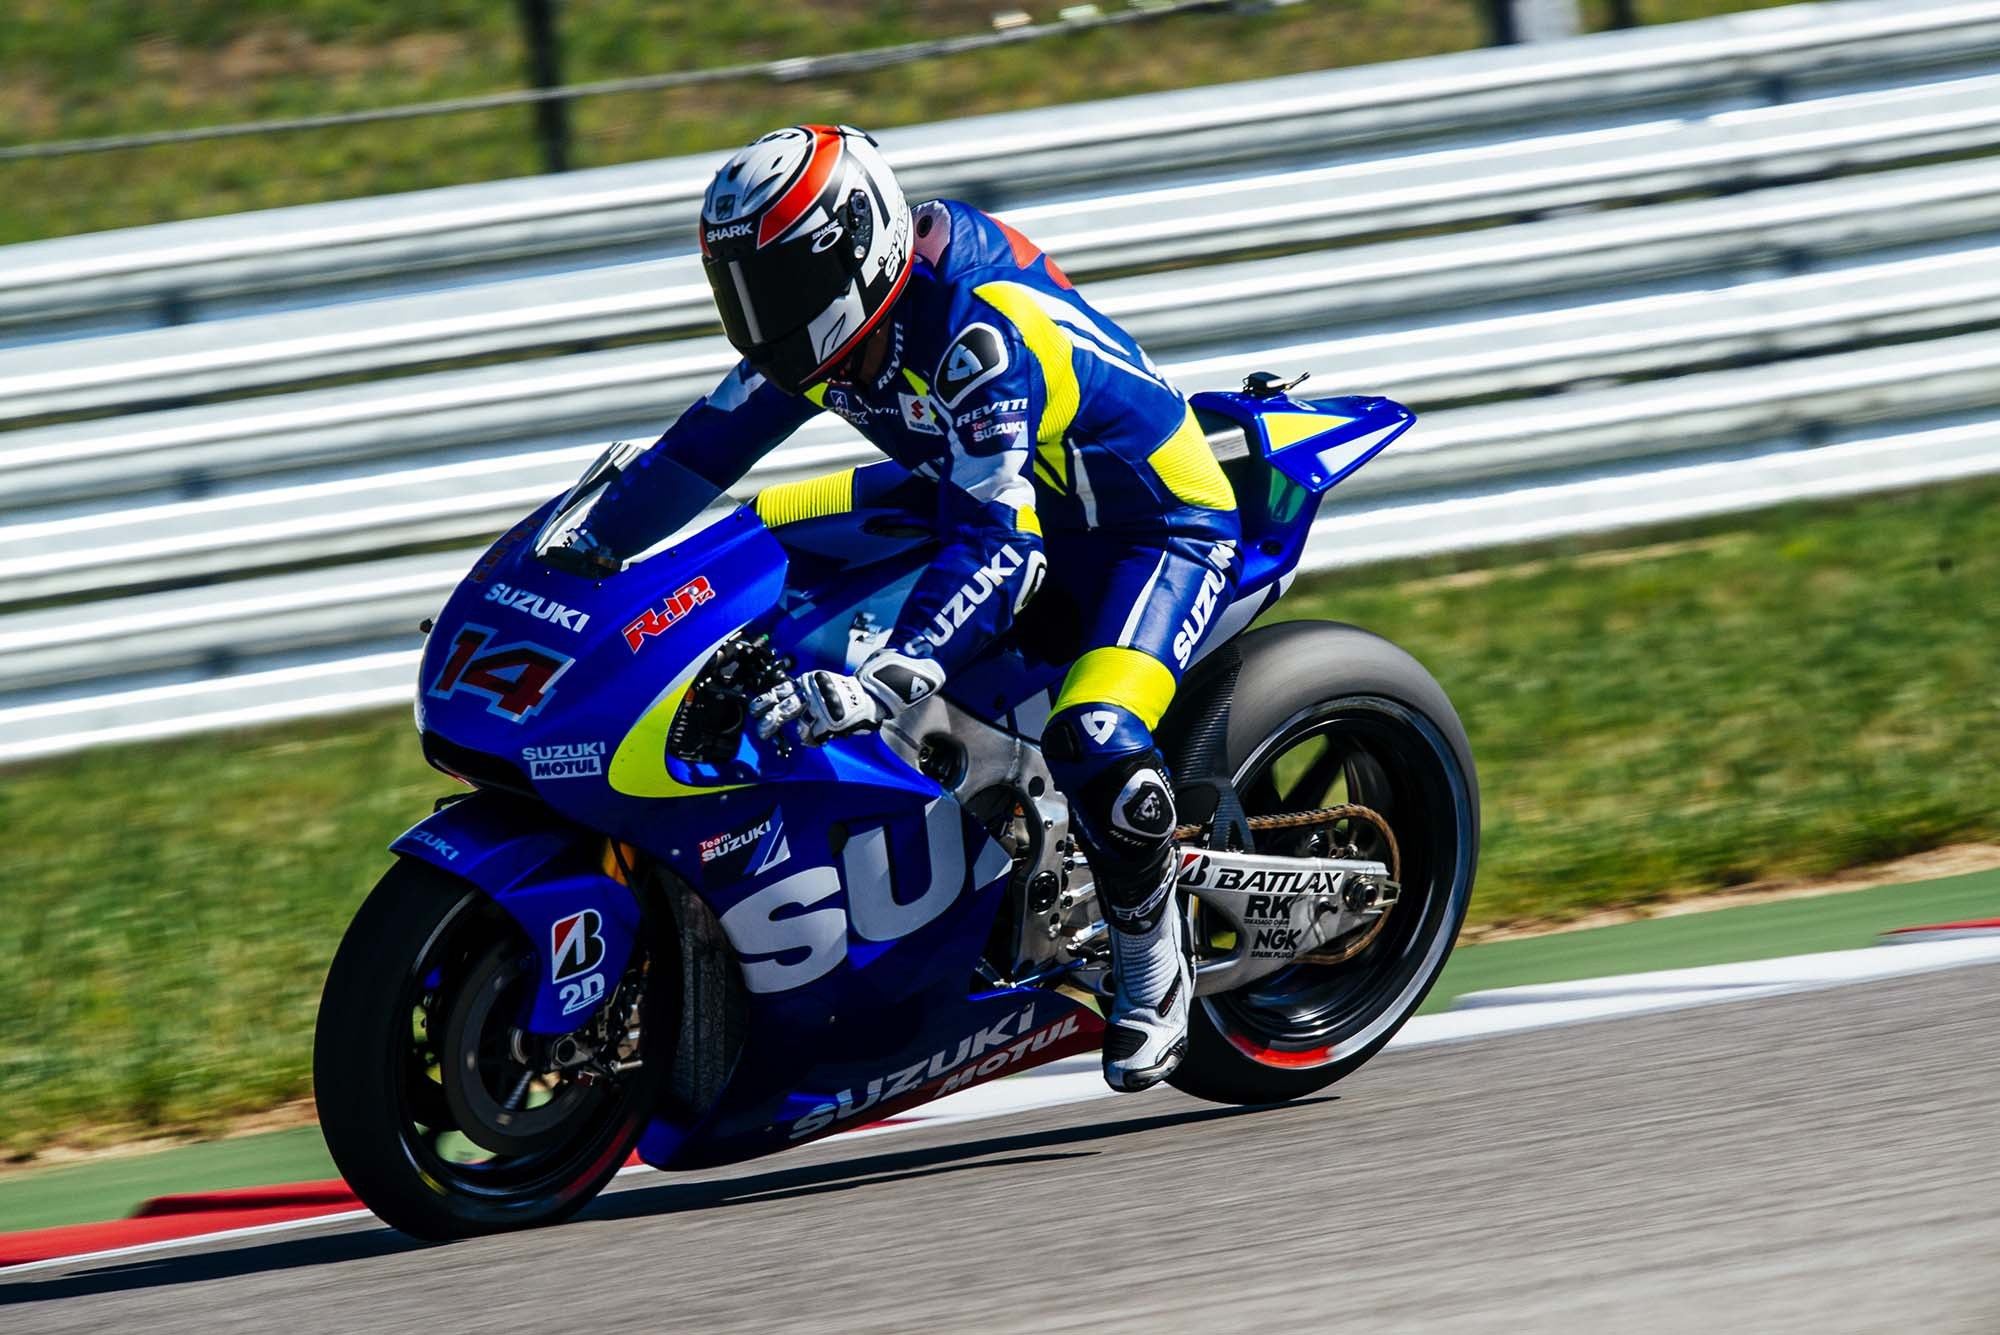 Suzuki on Par with Open Bikes at the COTA Test, Schwantz Rides, Too - autoevolution